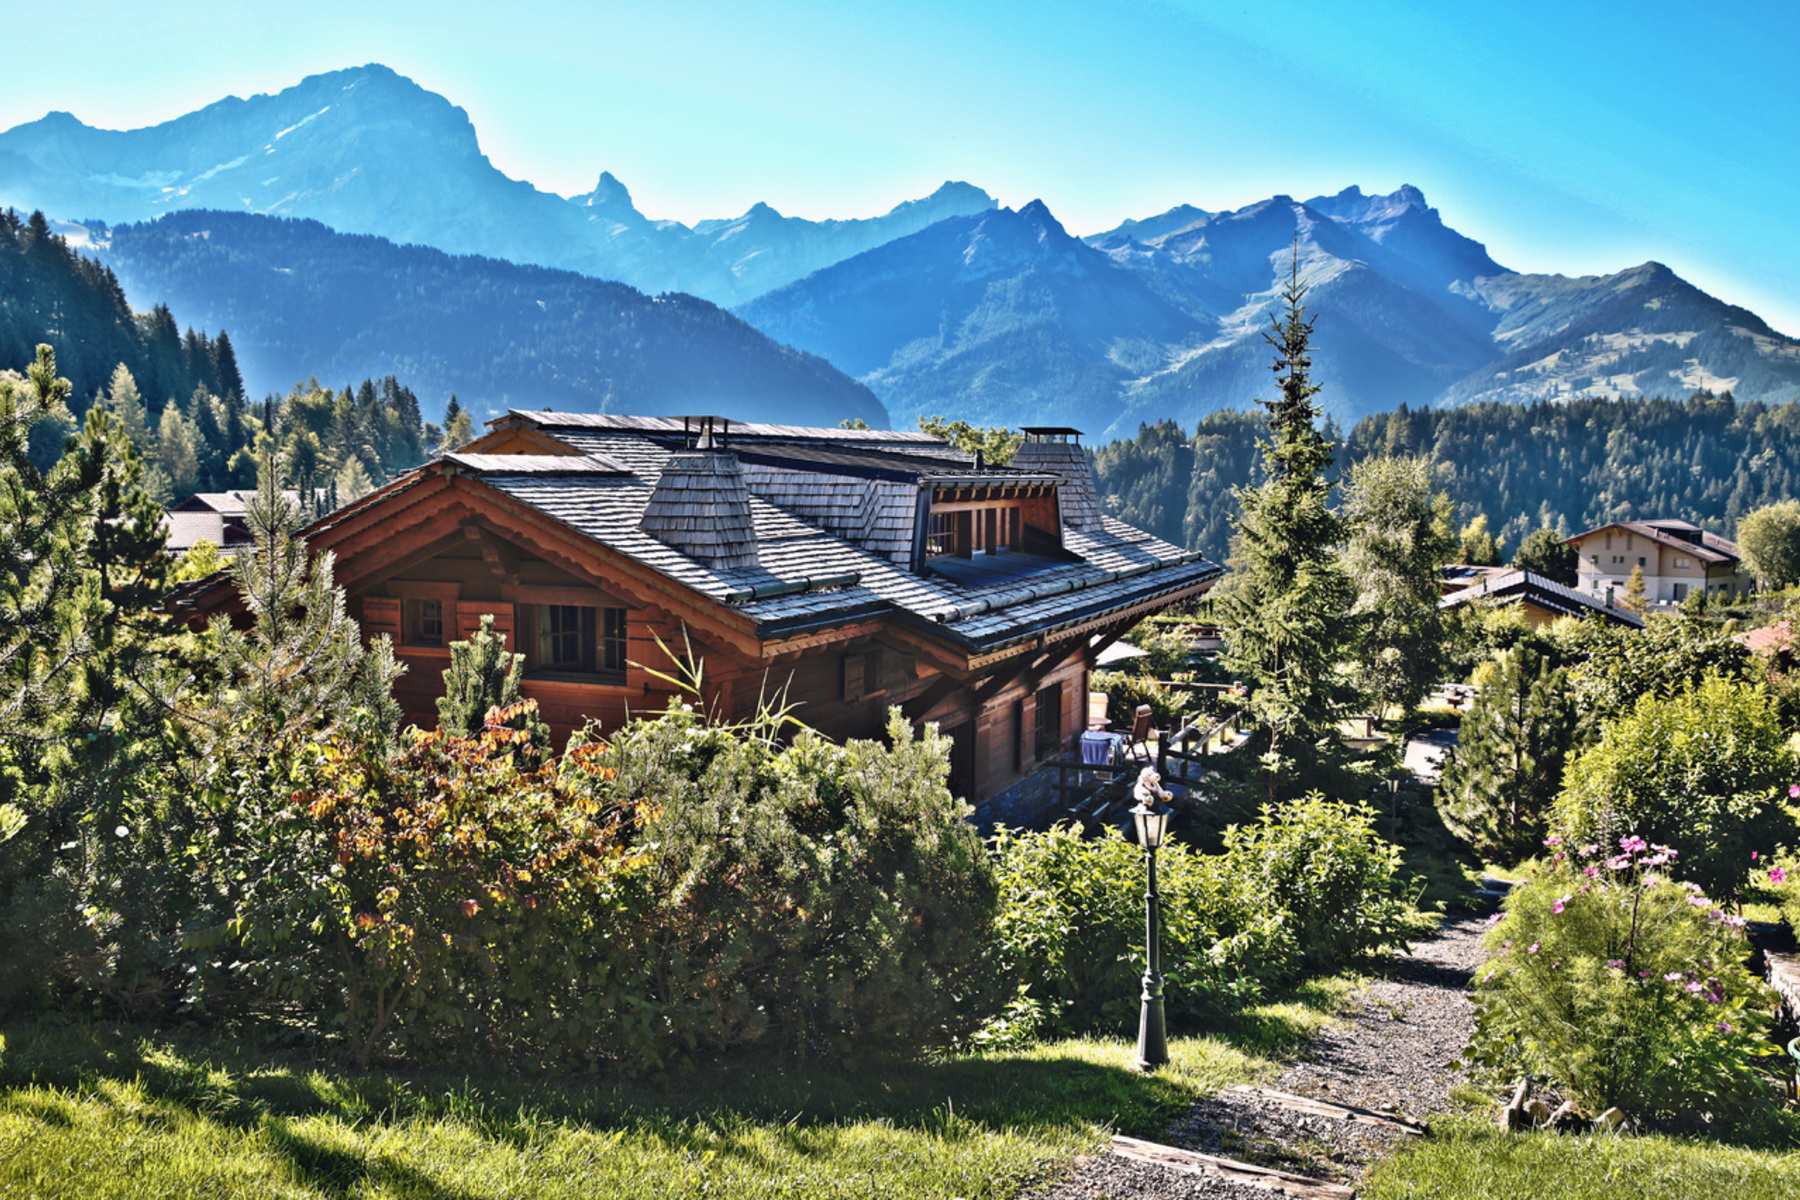 Single Family Home for Sale at Chalet Anouche Route des léchèieres 22 Villars-Sur-Ollon, Vaud 1884 Switzerland